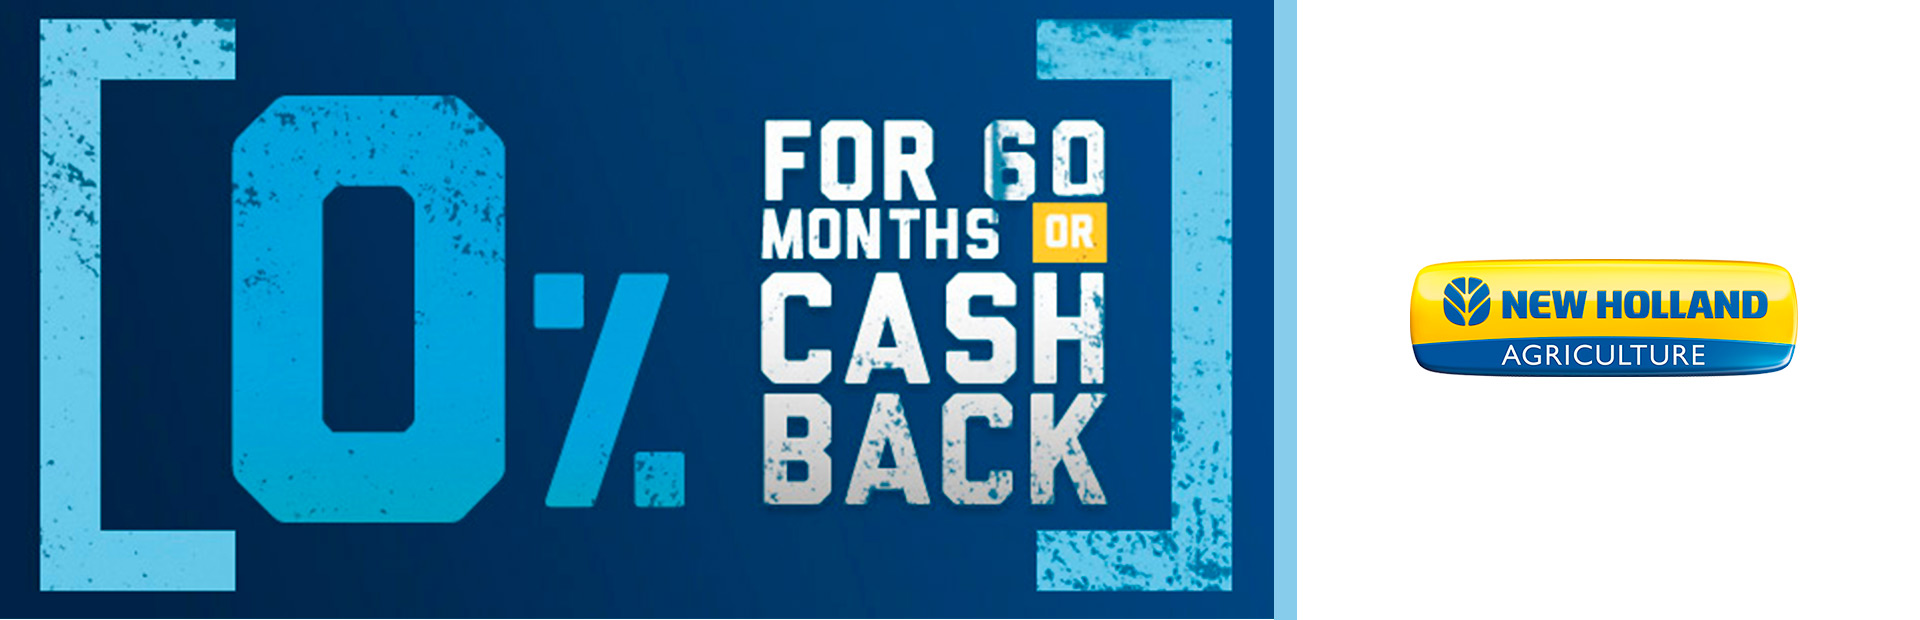 New Holland Agriculture:  0% for 60 OR Cash Back